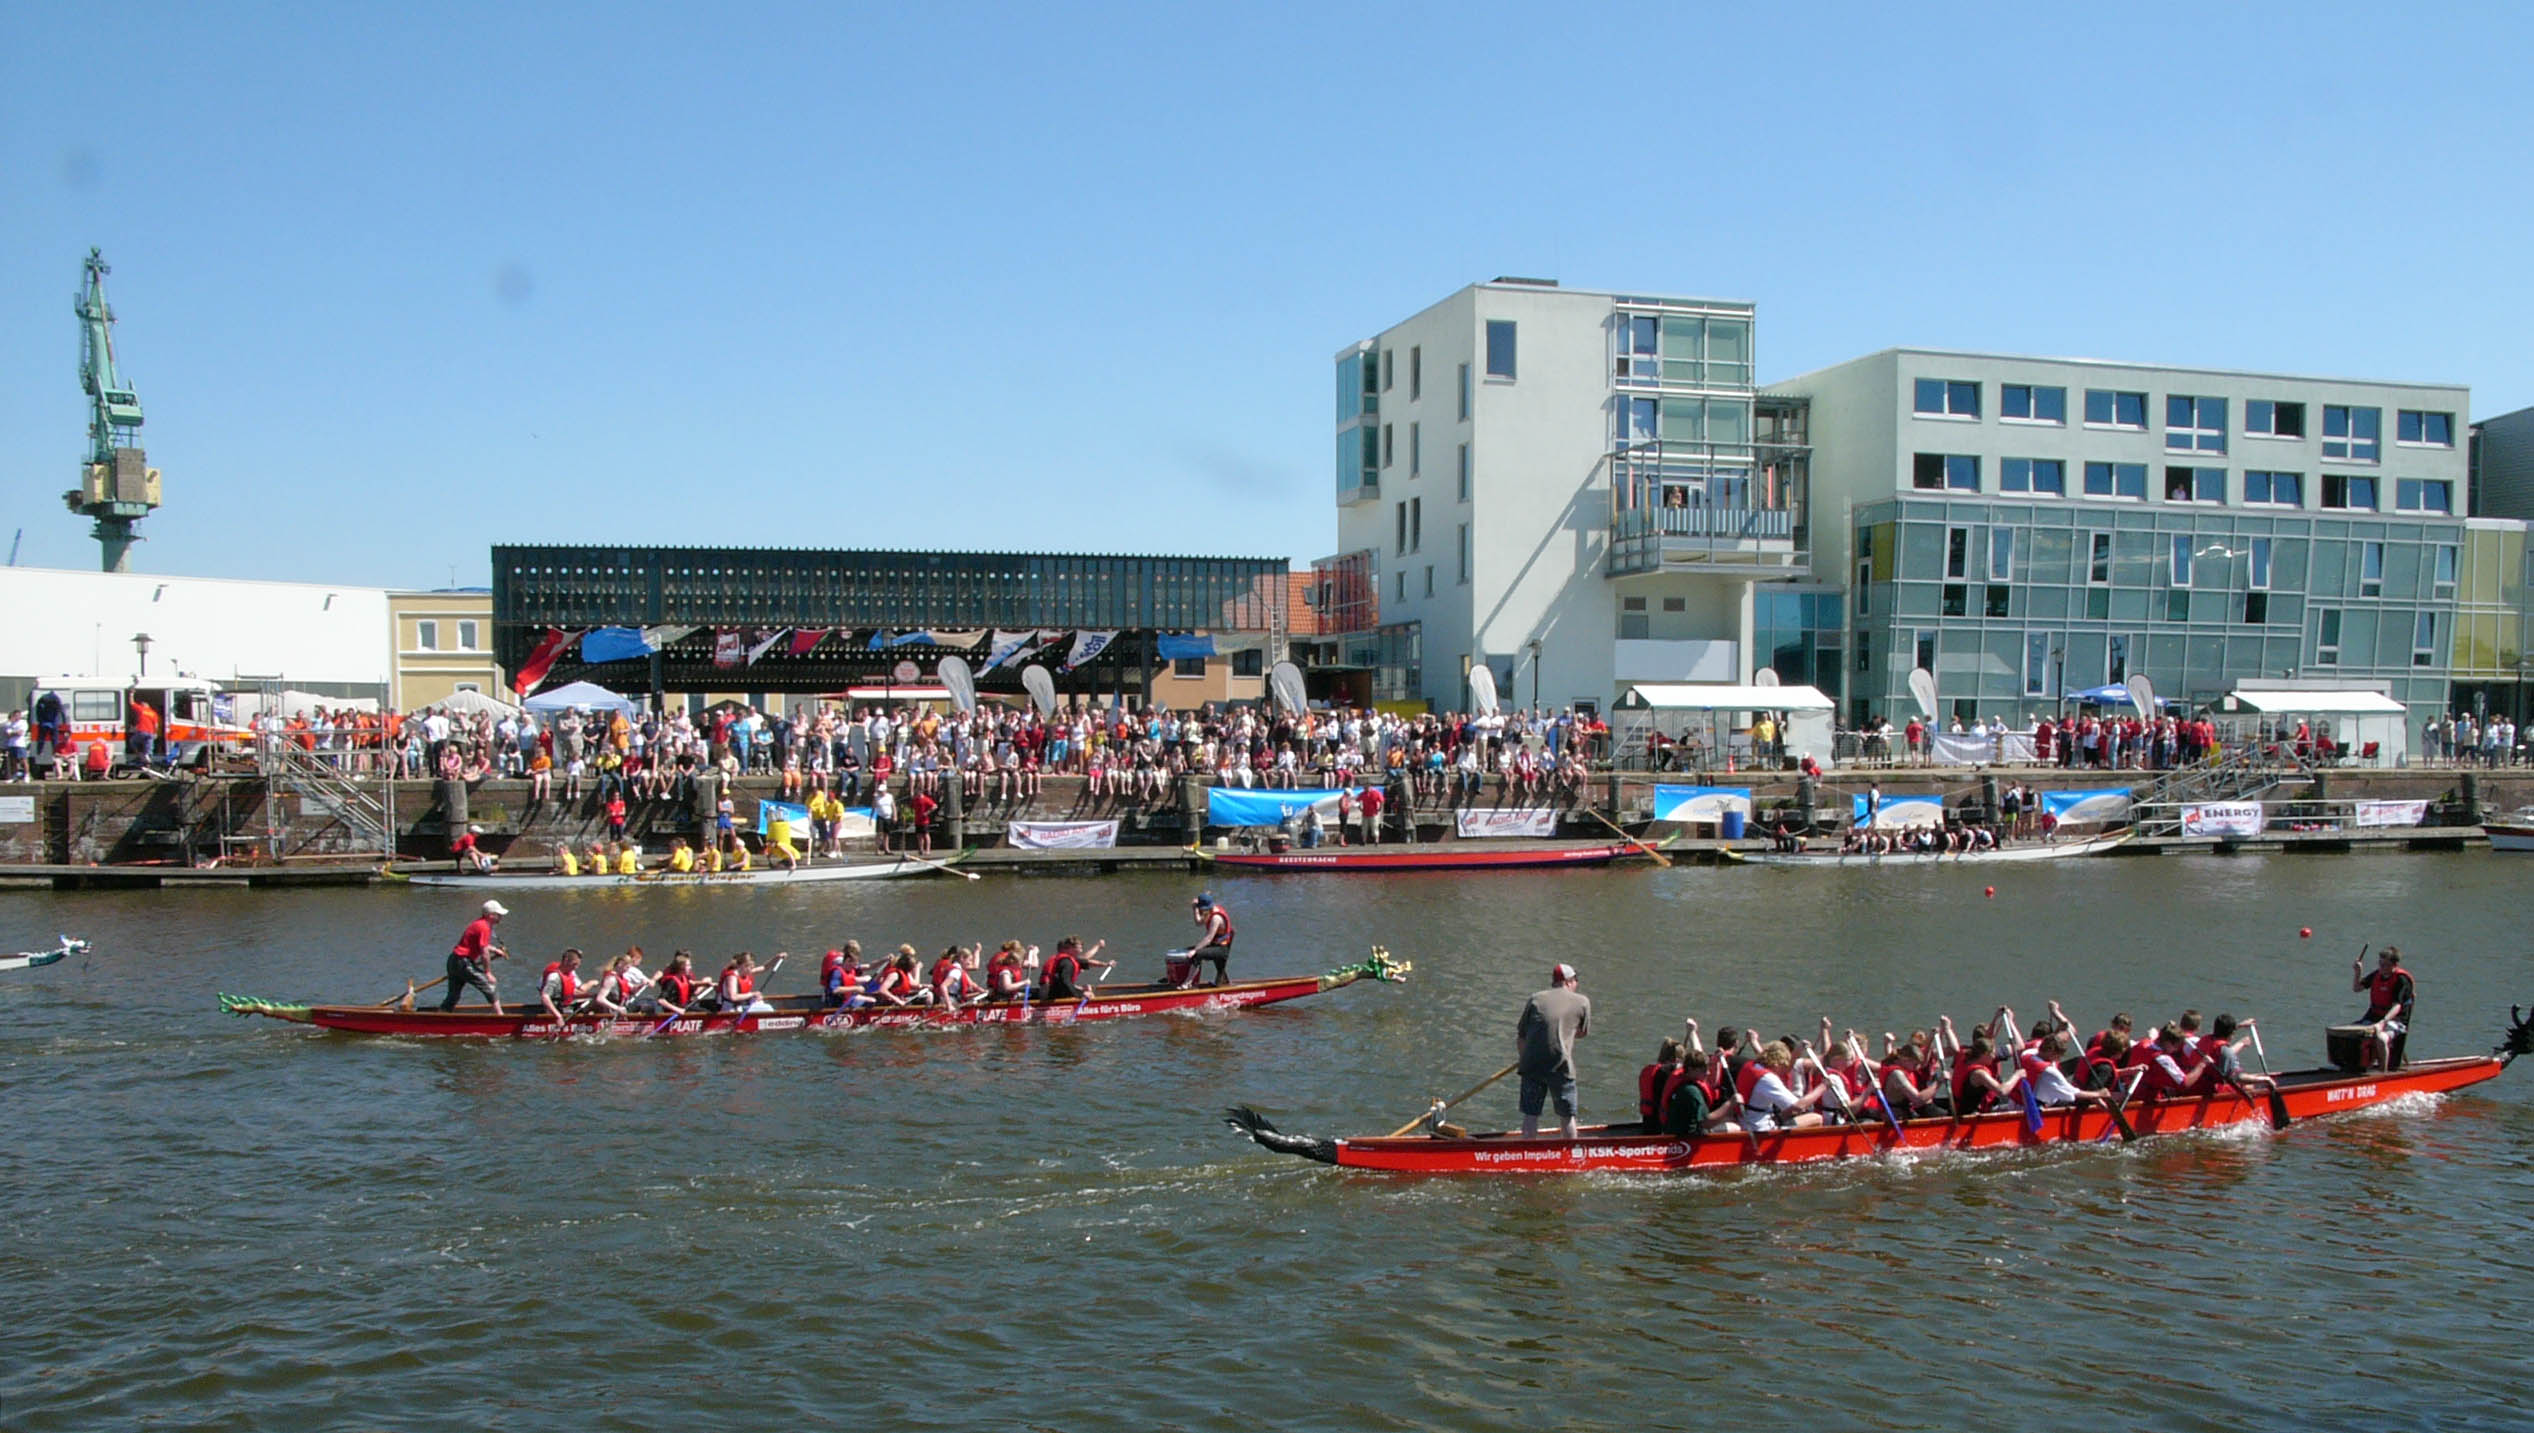 Description Dragon-boat-race bhv hg.jpg